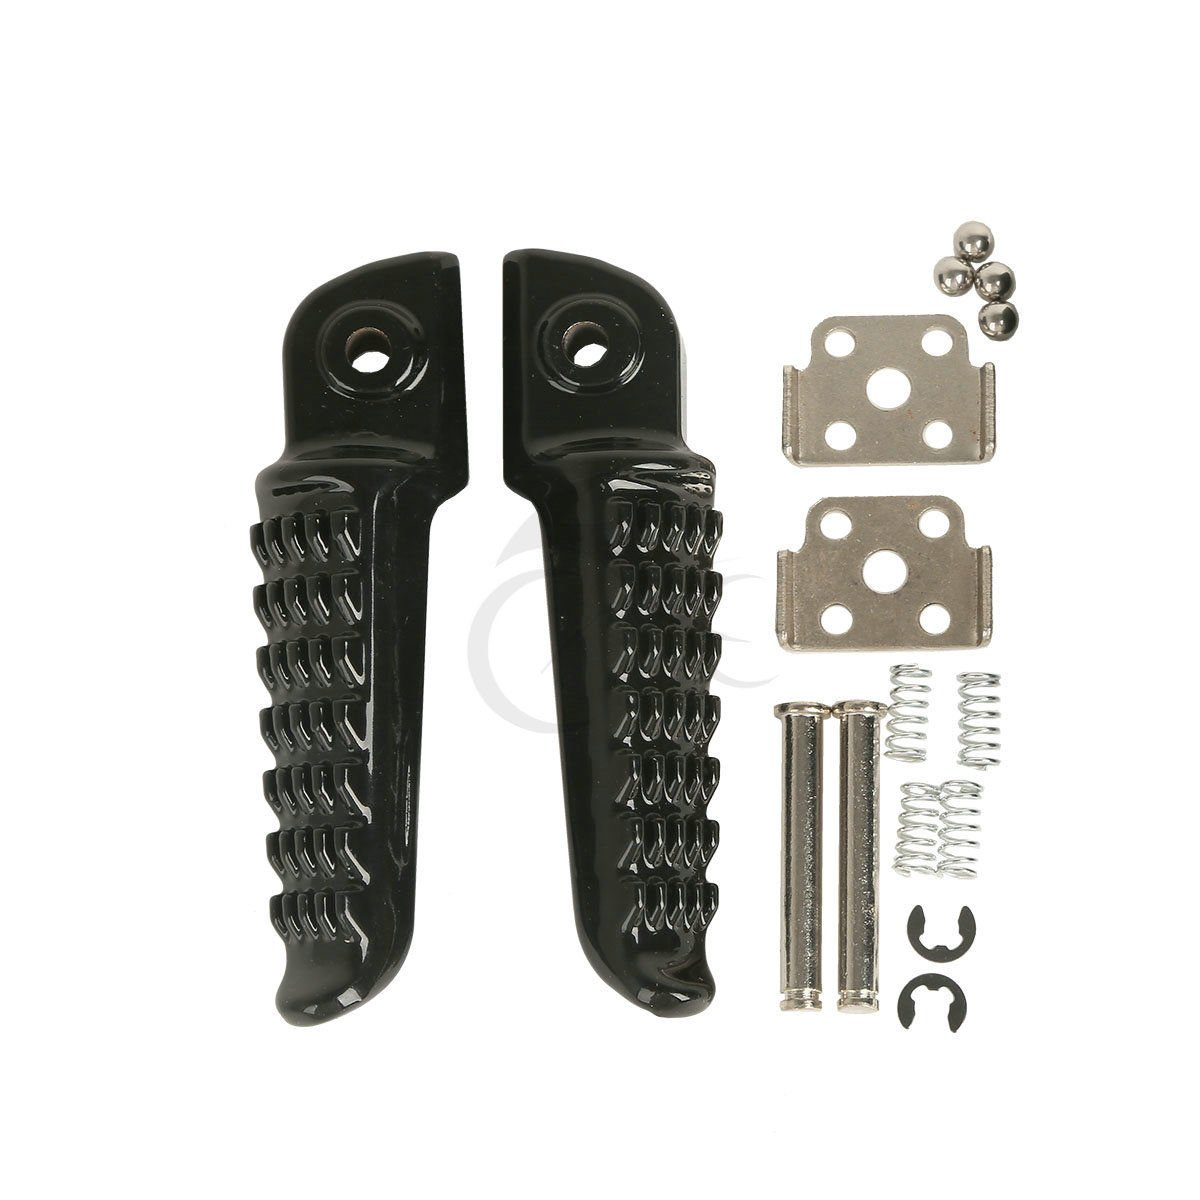 Tengchang Black Footrest Foot Pegs Rear For Kawasaki Ninja ZX6R ZX10R ER6F ER6N 650R ZX-6R